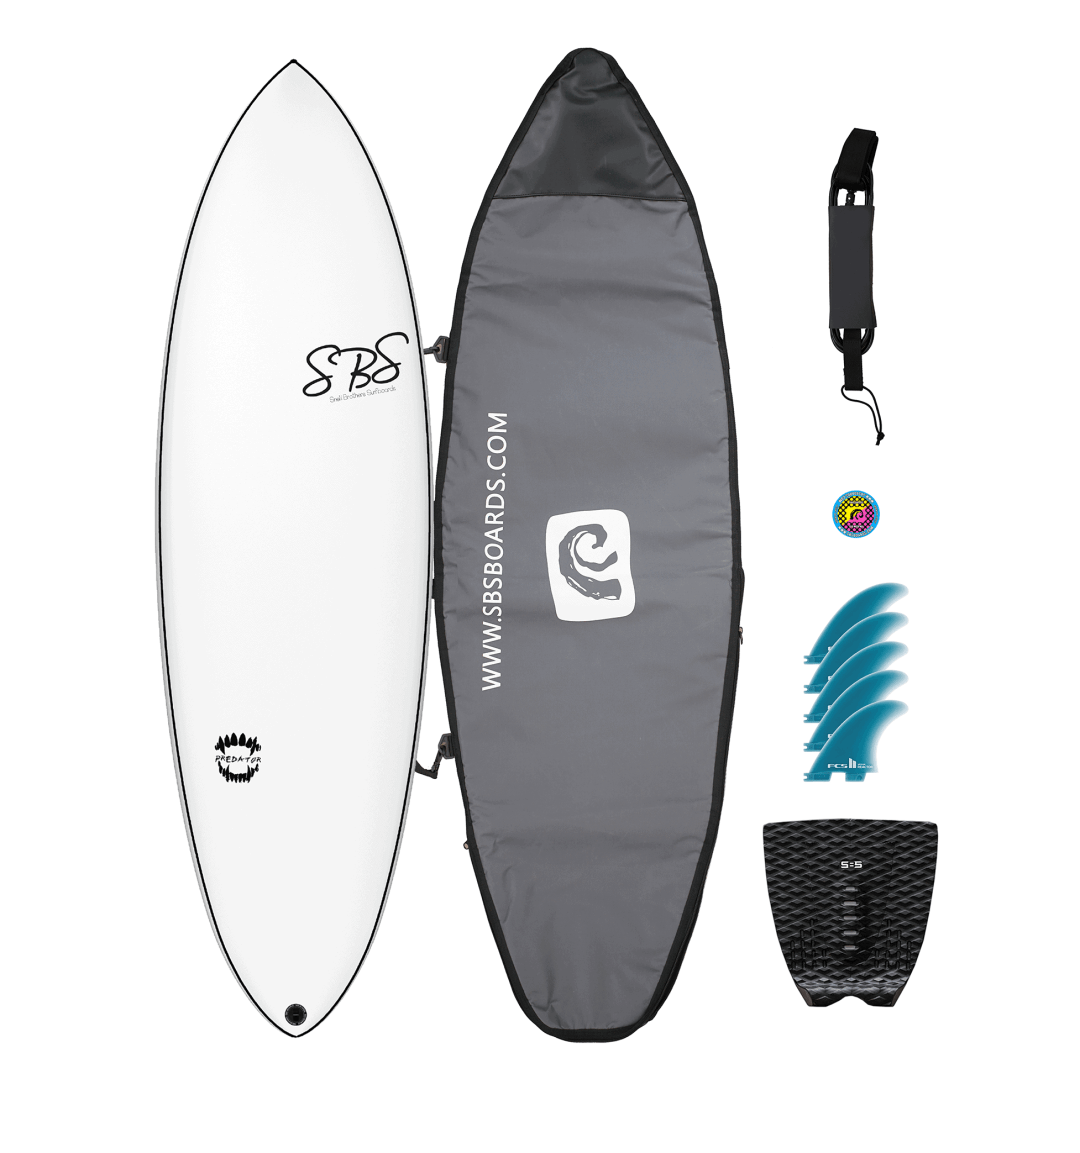 Hunting for Waves With The Predator Surfboard